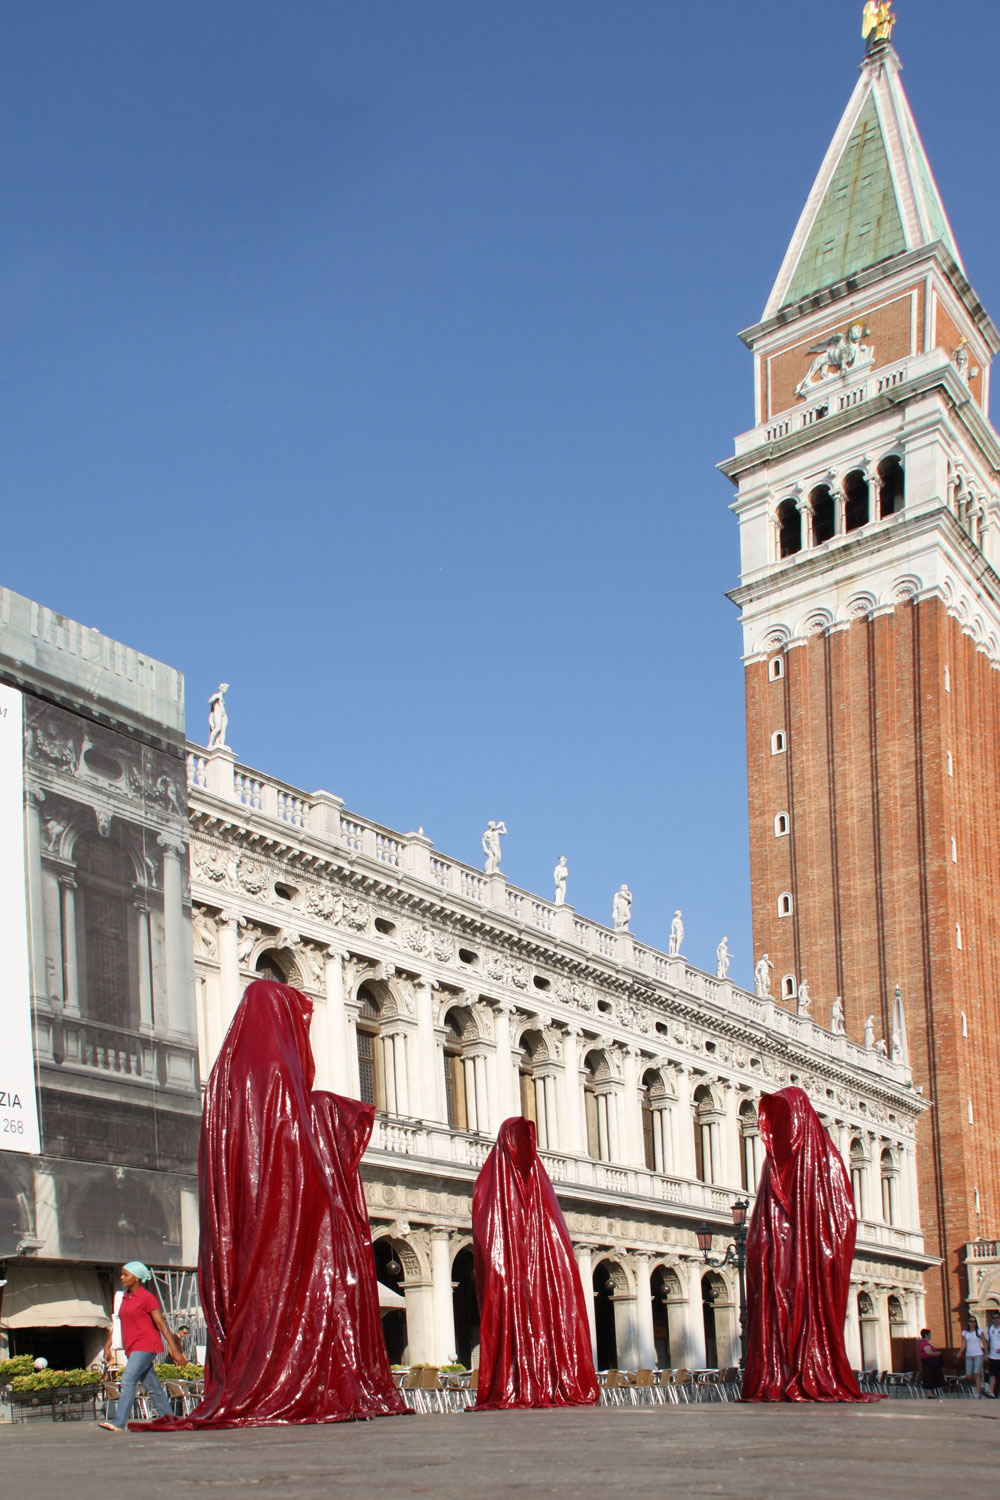 public biennale de arte venice international world light art arts design exhibition sculpture guardians of time manfred kielnhofer 4328x